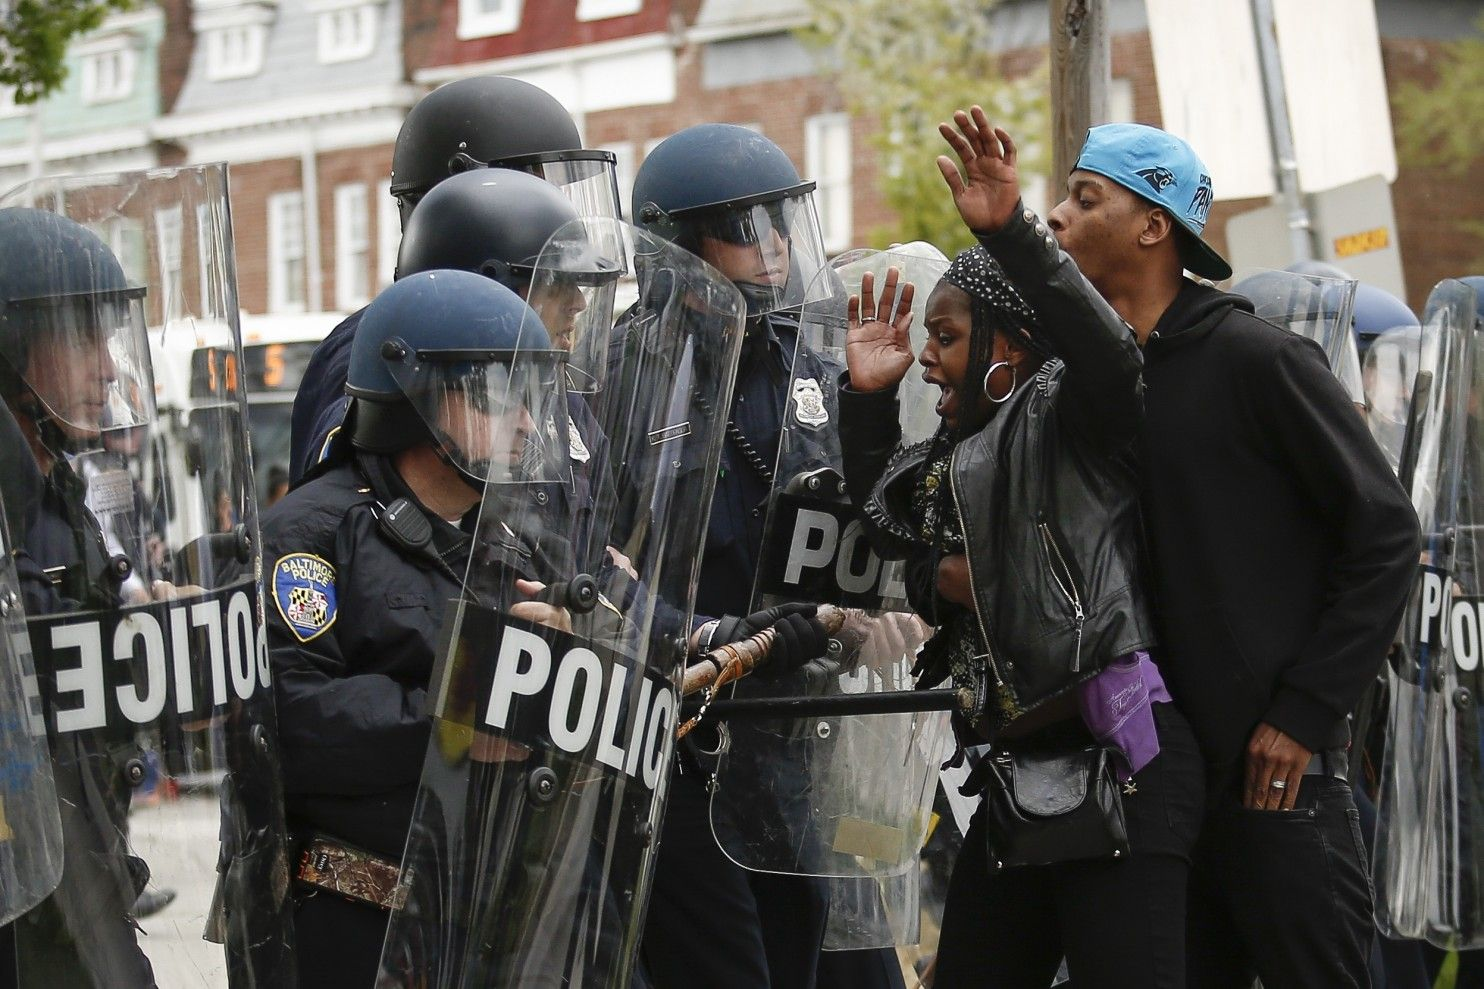 Baltimore police officers in riot gear push protestors back along - I Was A Civil Rights Activist In The 1960s But It S Hard For Me To Get Behind Black Lives Matter